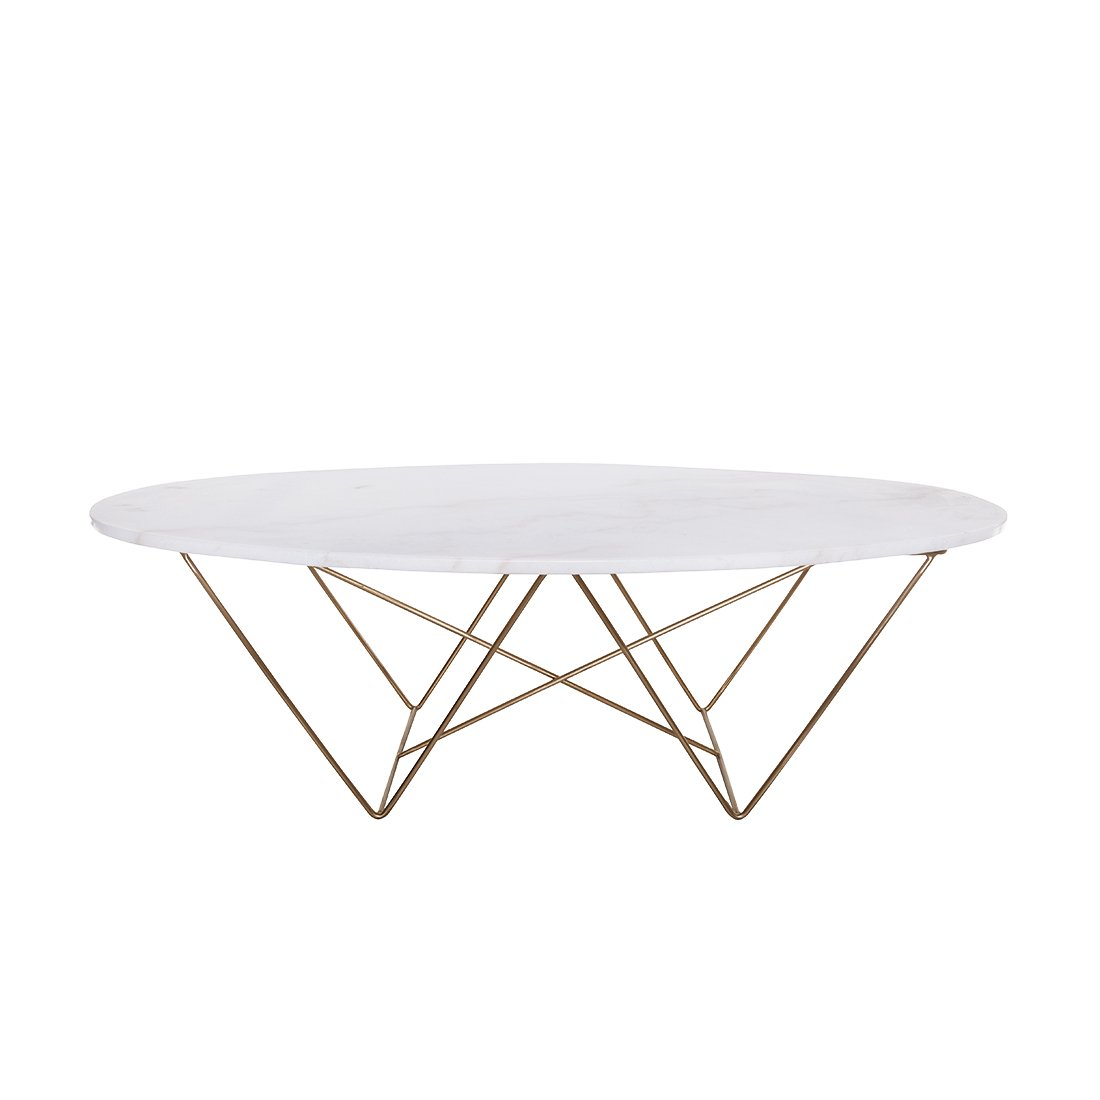 [FHT11WHT] Odense Coffee Table